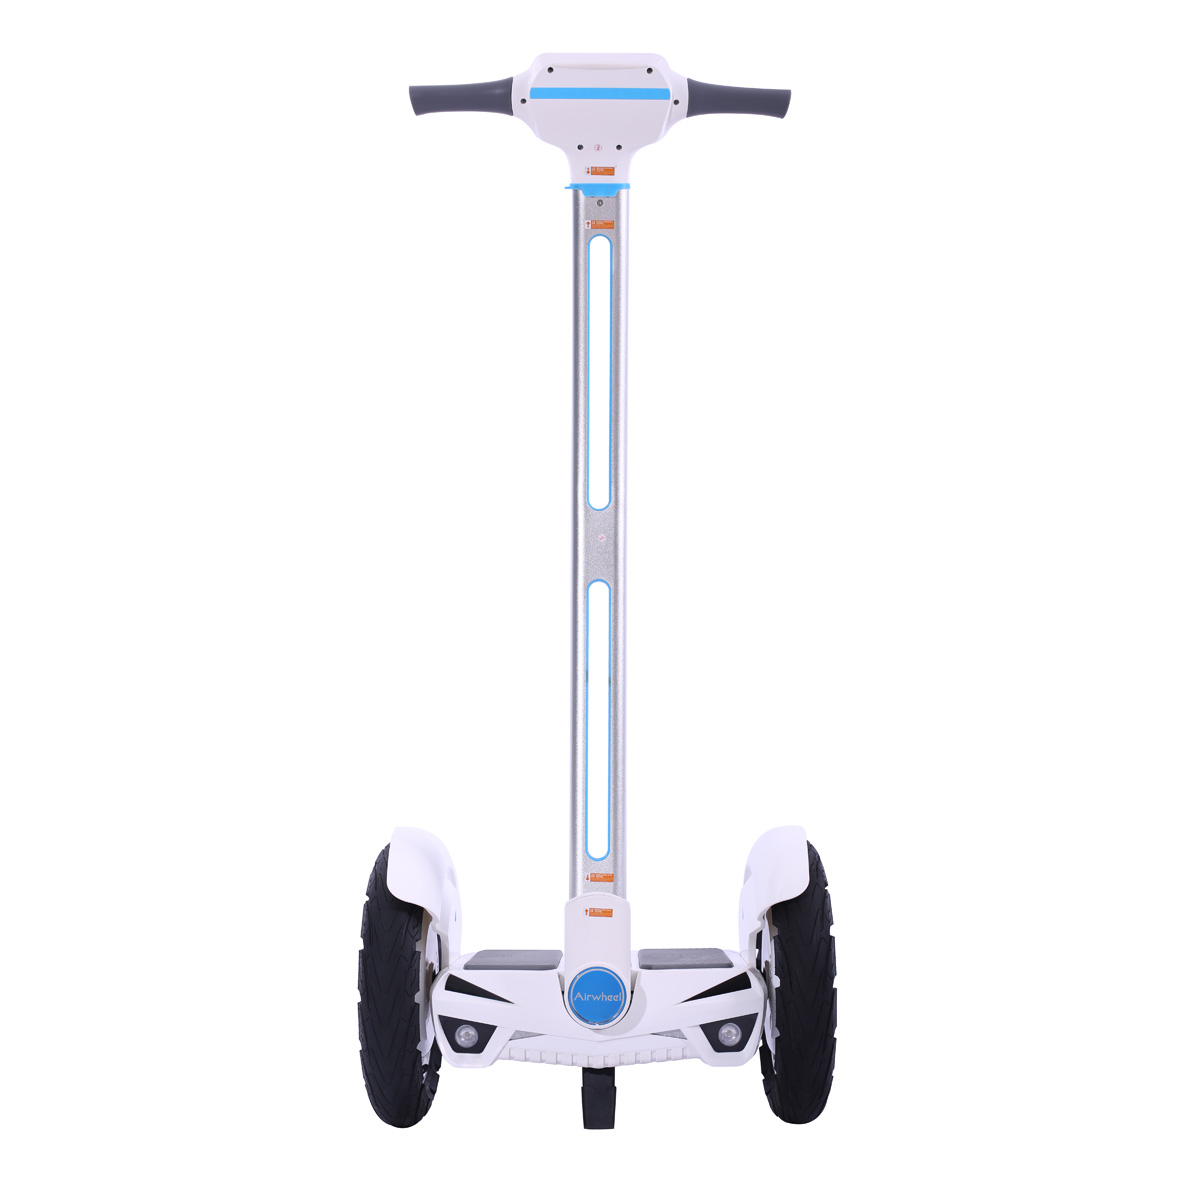 Сегвей Airwheel S3 (белый с синим) бра mw light фелиция 347020801